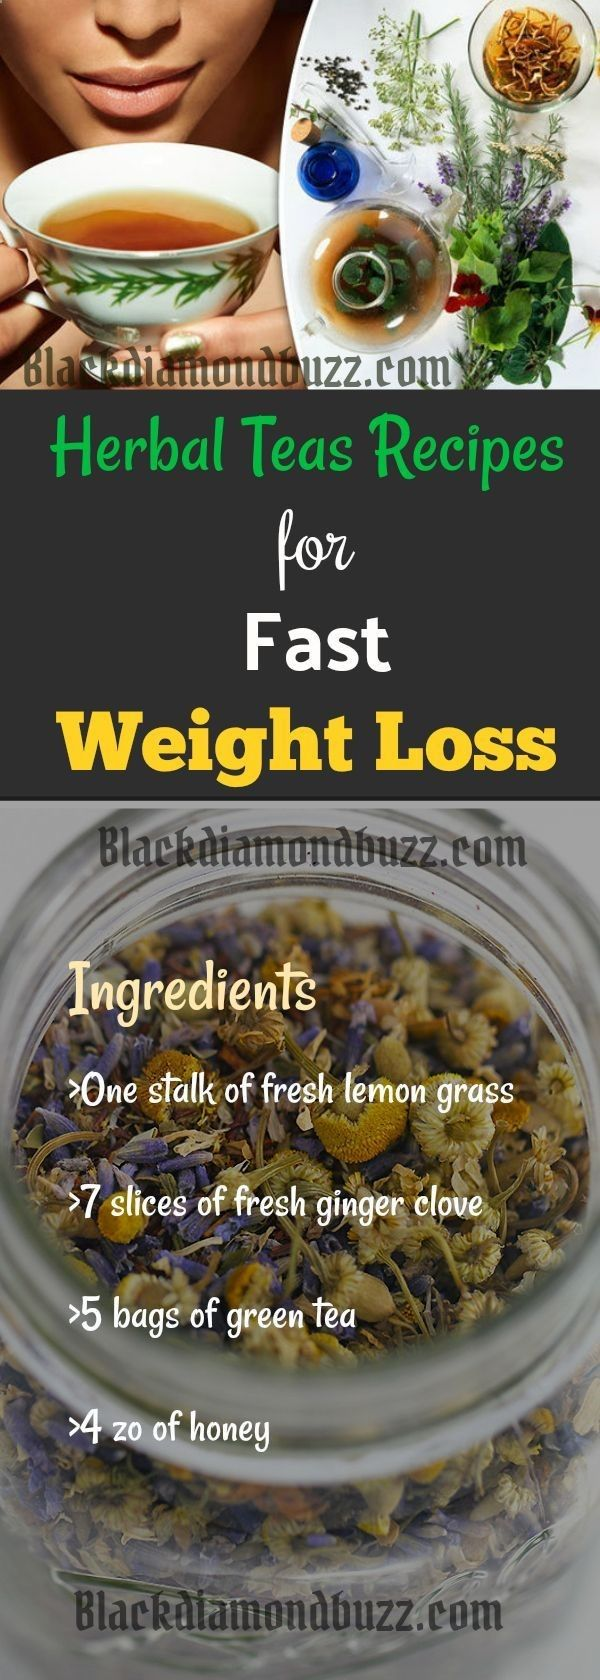 How To Make Herbal Tea Recipes For Fast Weight Loss. This